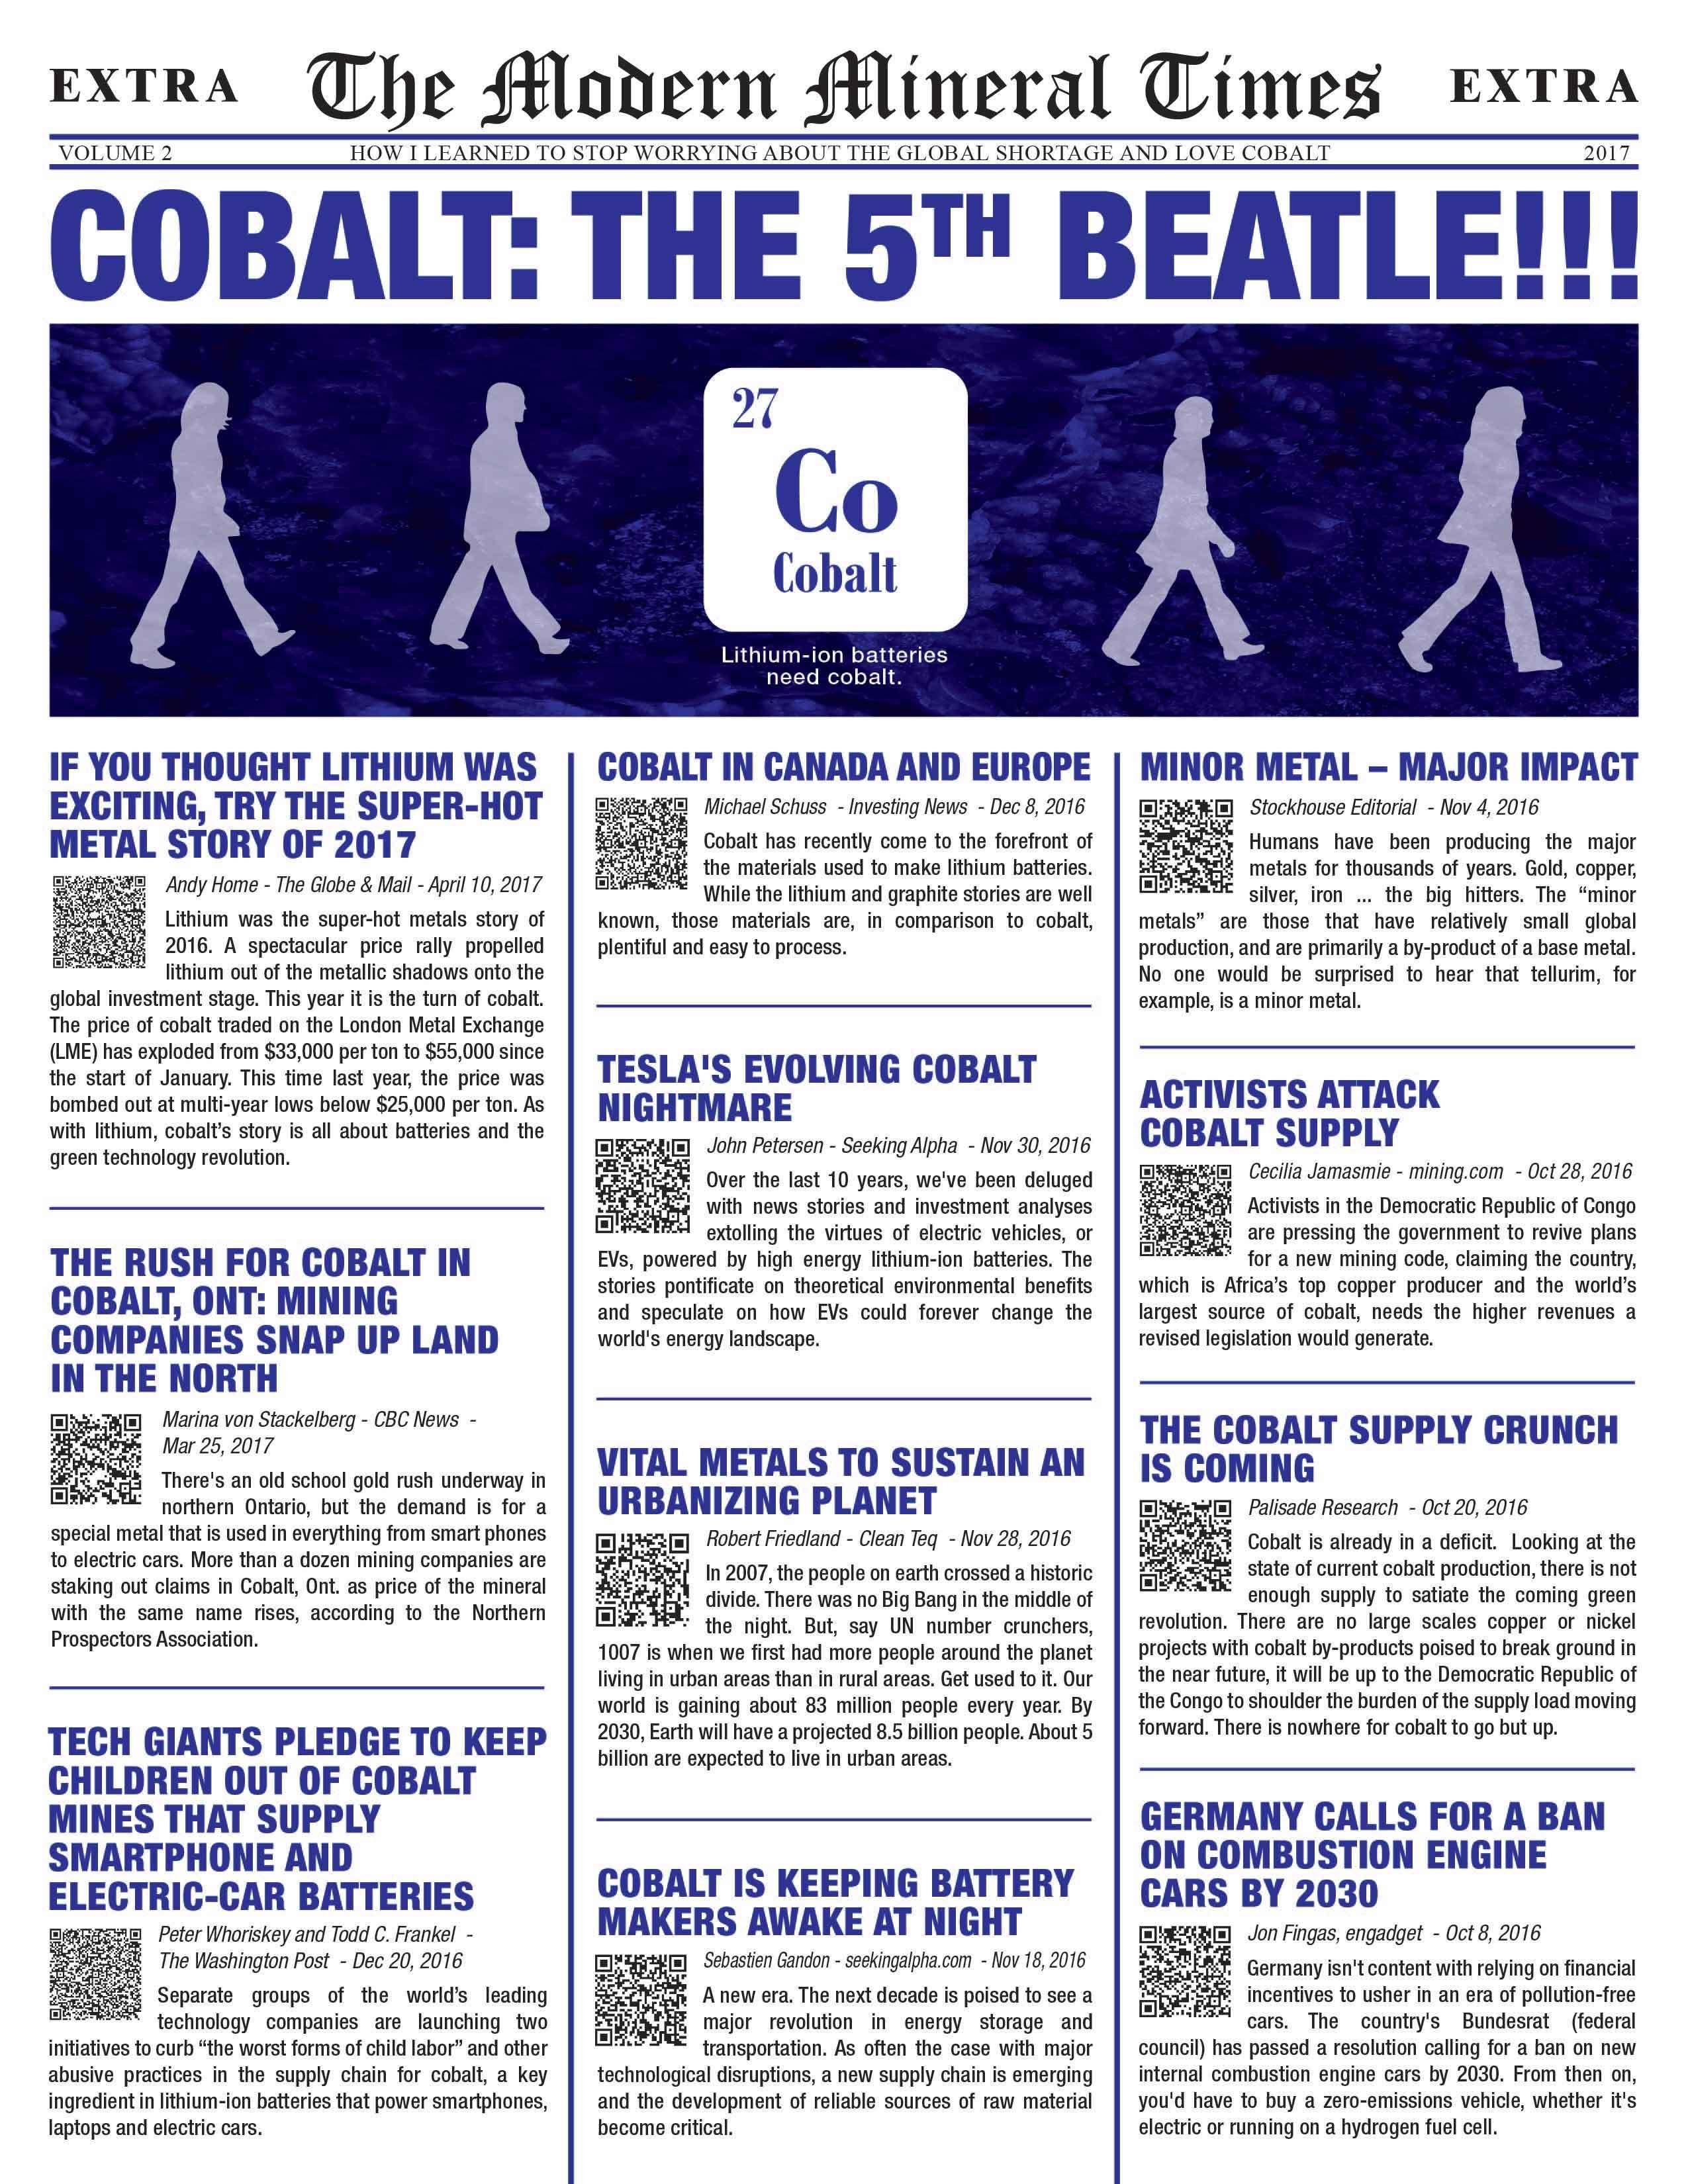 Cobalt: The 5th Beatle...